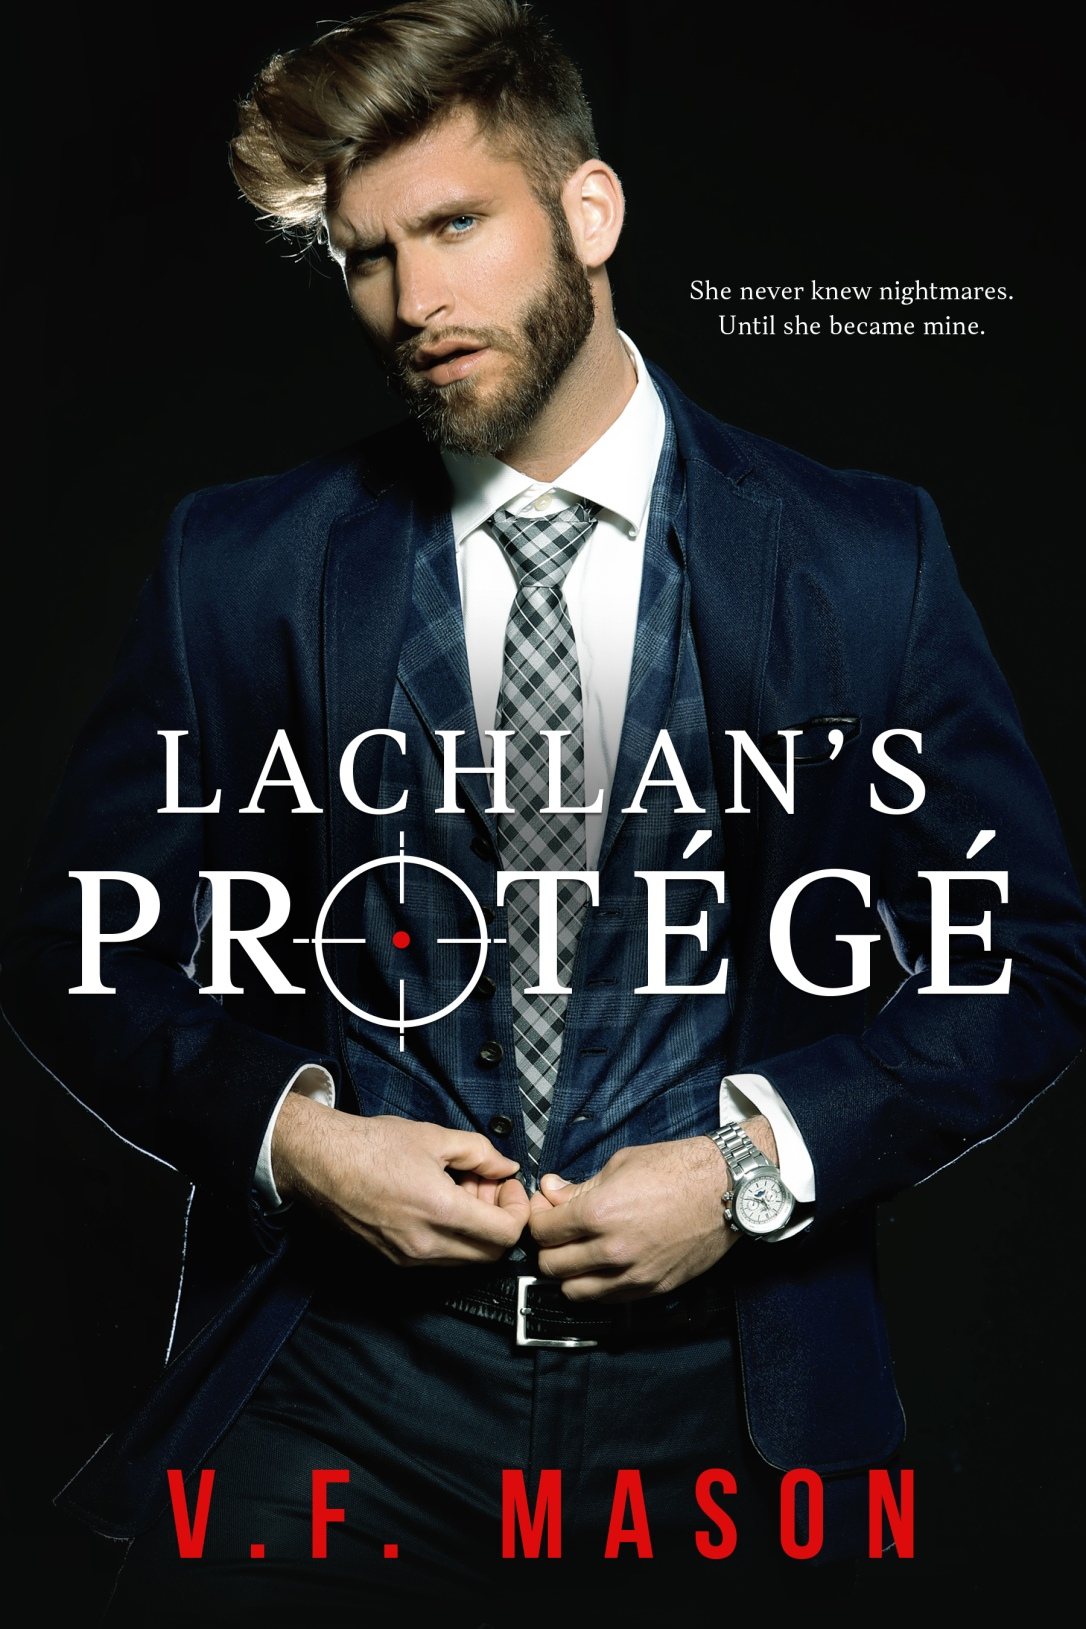 LachlansProtege_FrontCover